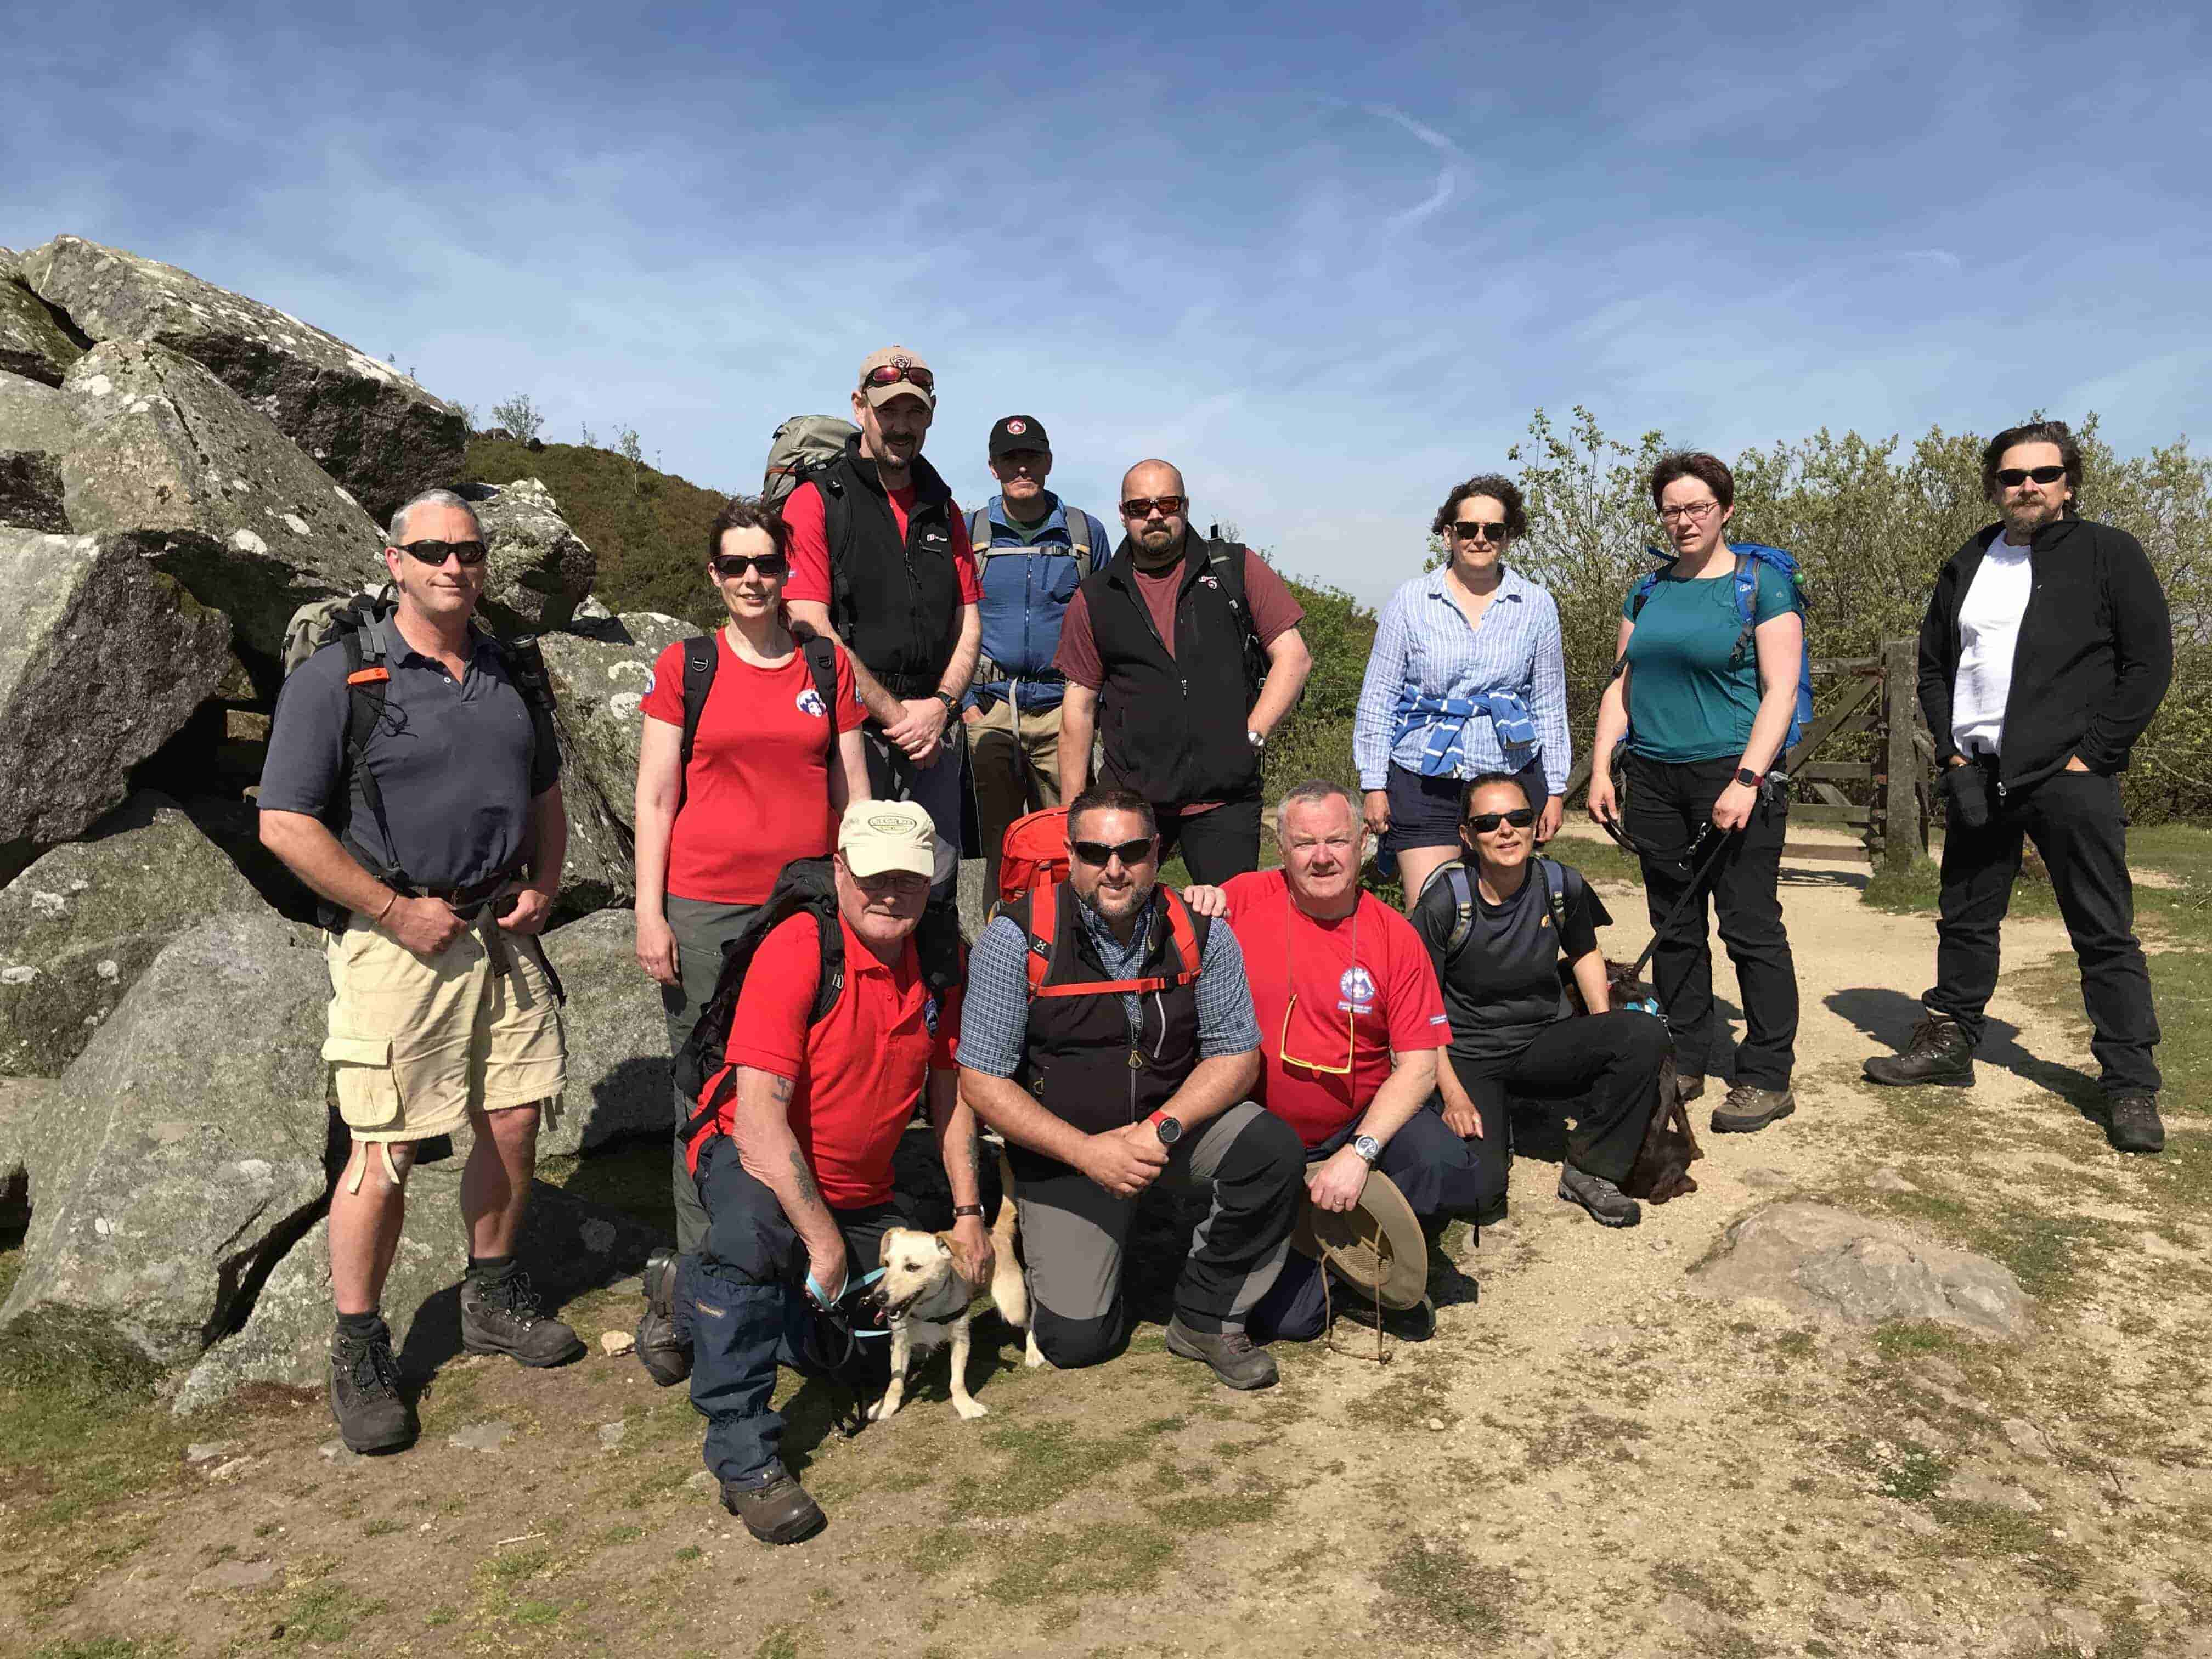 Team members meet to remember team mate Pauline who died whilst on duty at Ten Tors this year